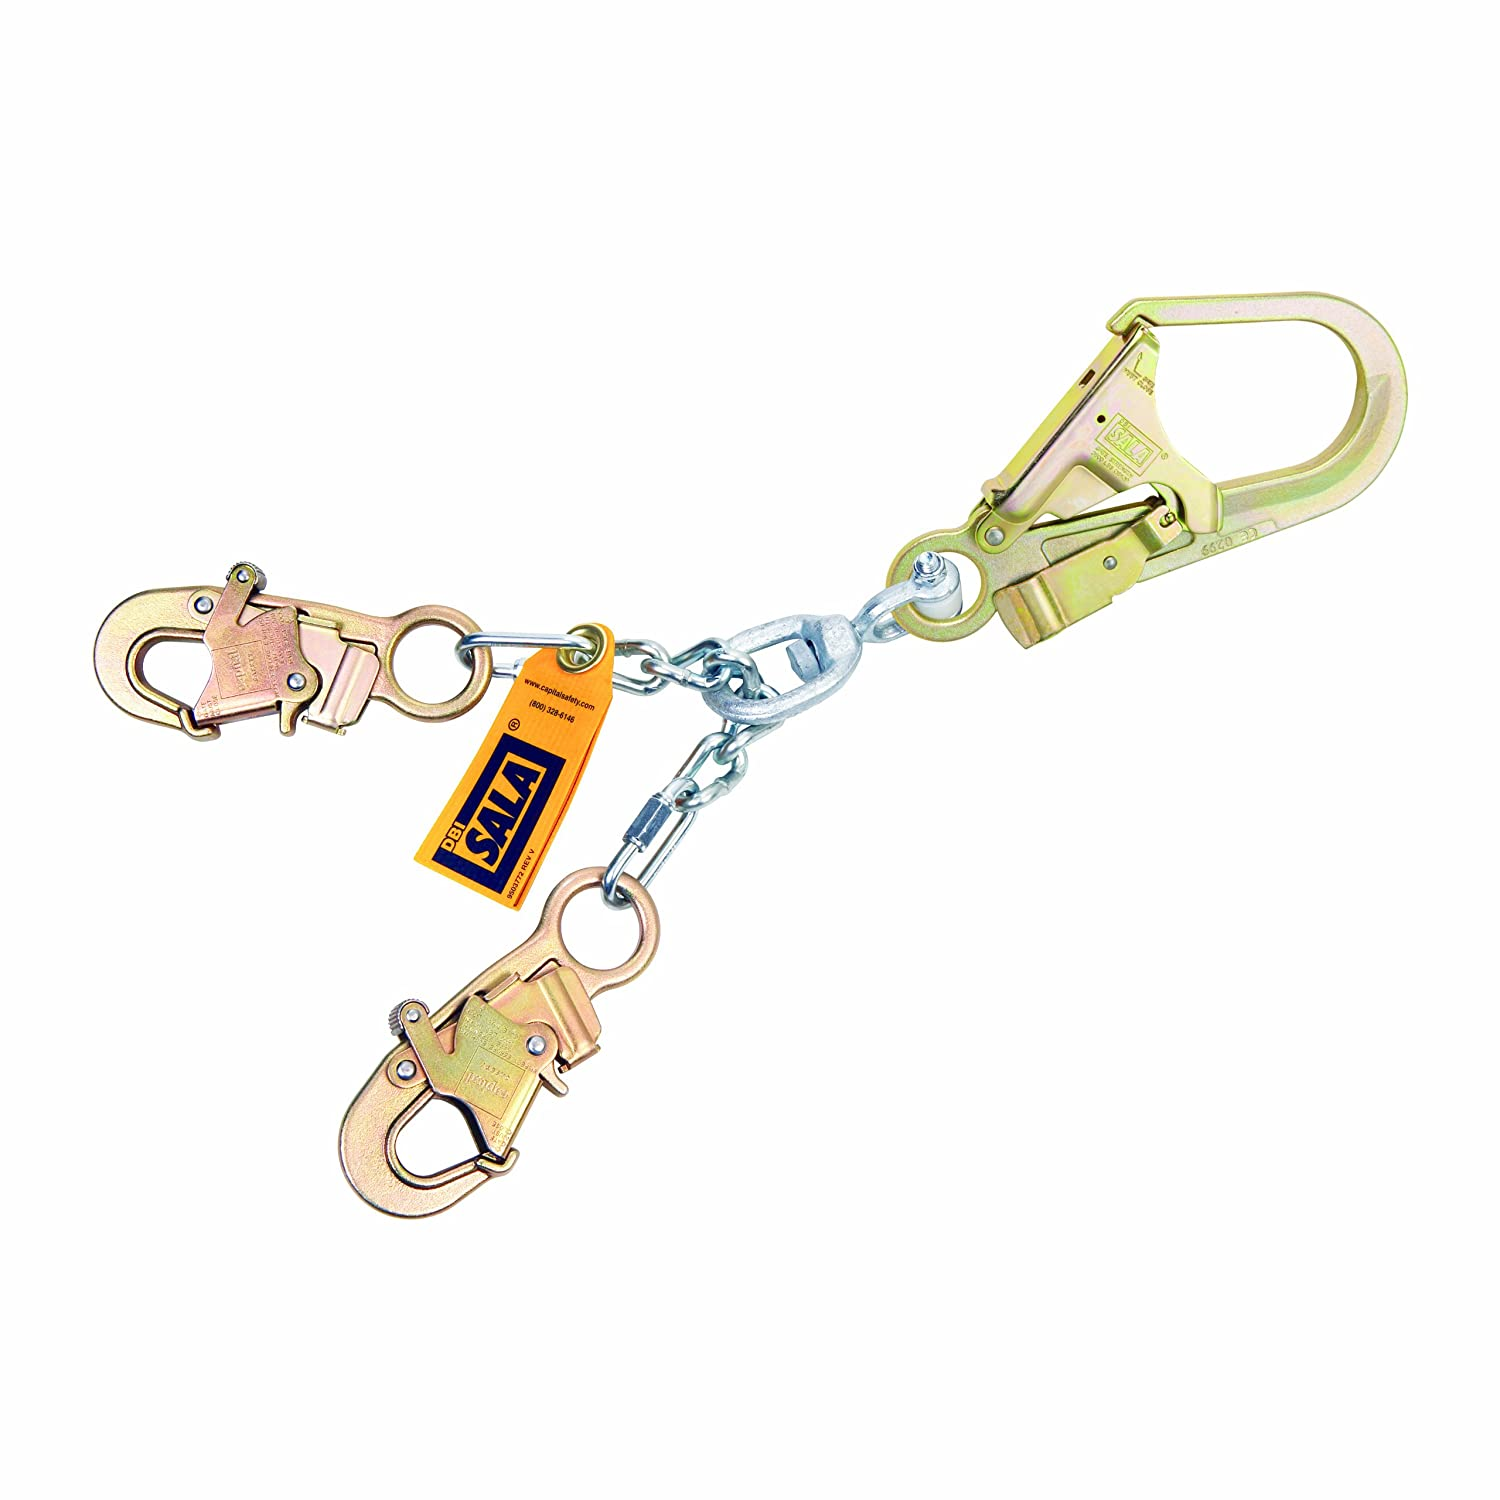 3M DBI-SALA 5920050 Positioning Lanyard, 20.5-Inch Chain Rebar Assembly, with Swiveling Steel Rebar Hook At Center, Snap Hooks At Leg Ends, Silver by 3M Fall Protection Business  B00G99S9XQ